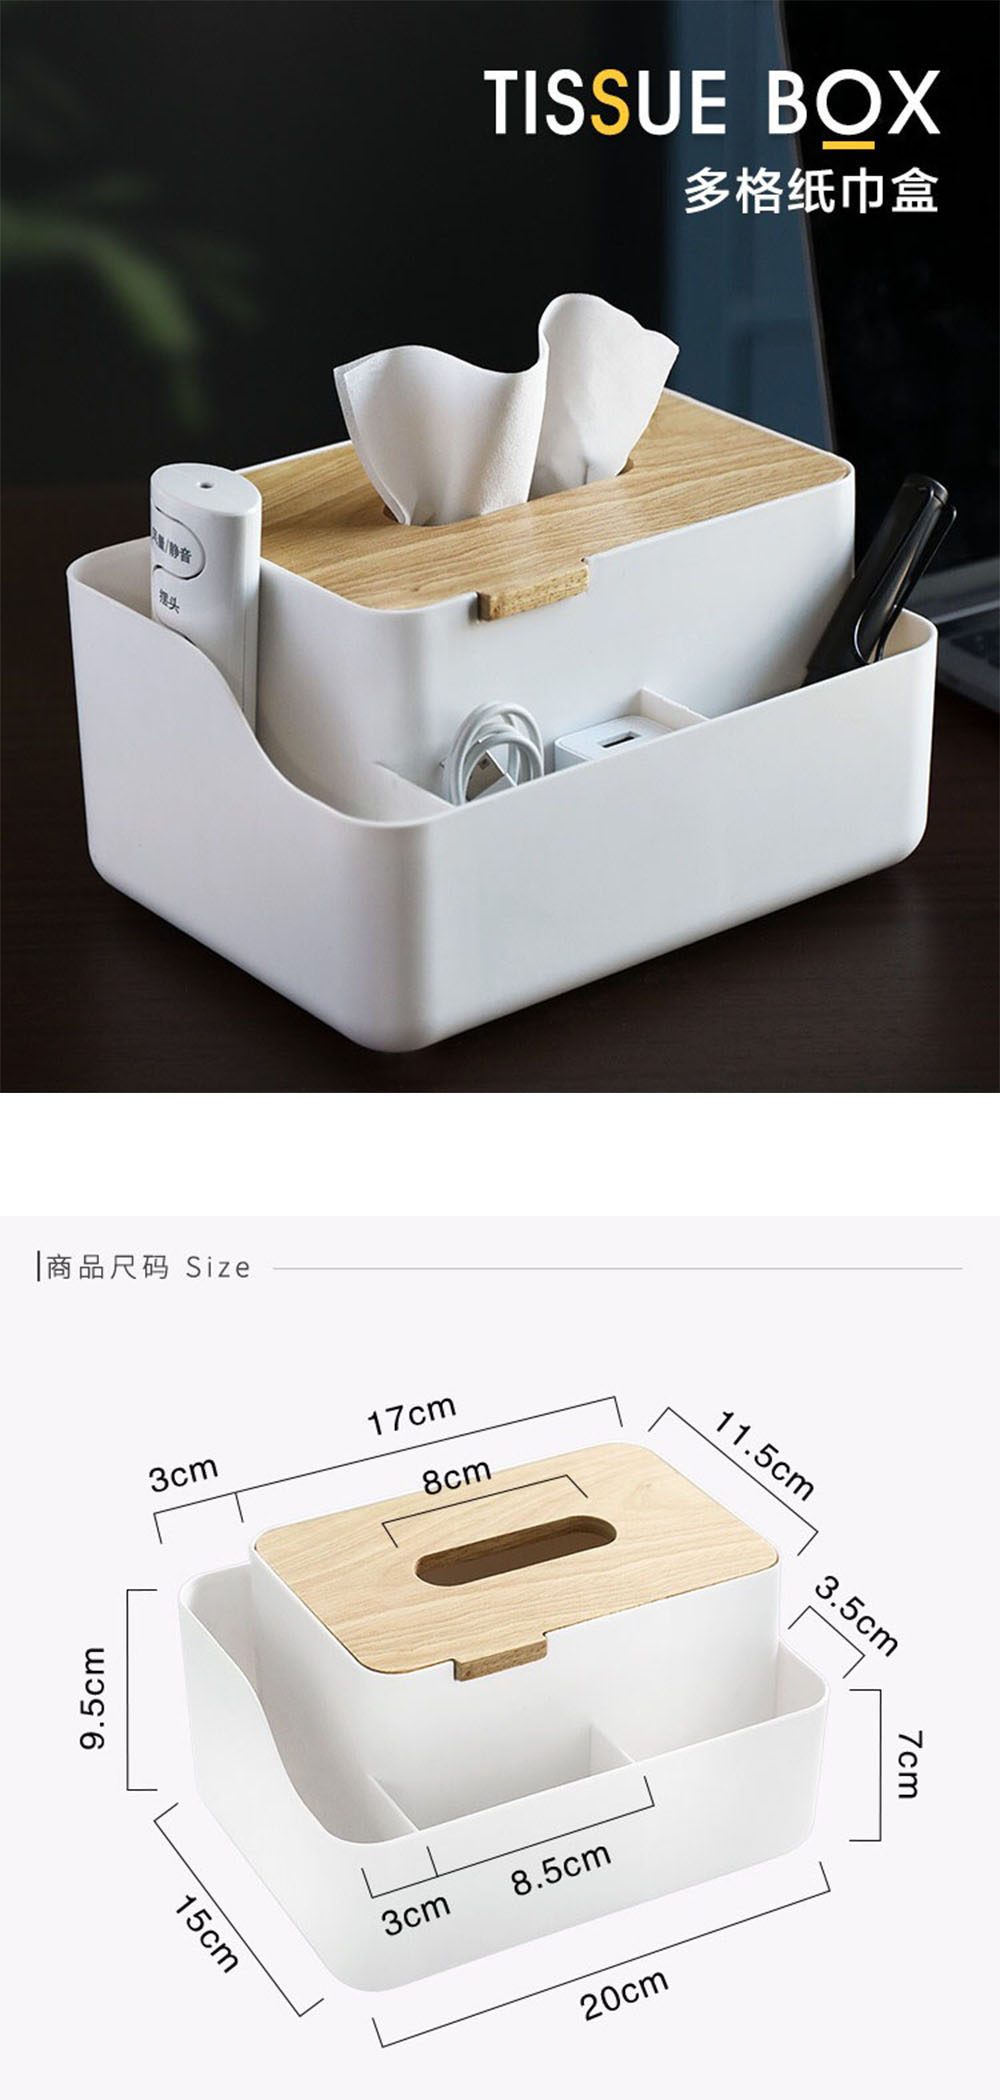 Desktop Napkin Storage Box Make Up Organizer  remote control holder multi functional table box with bamboo lid